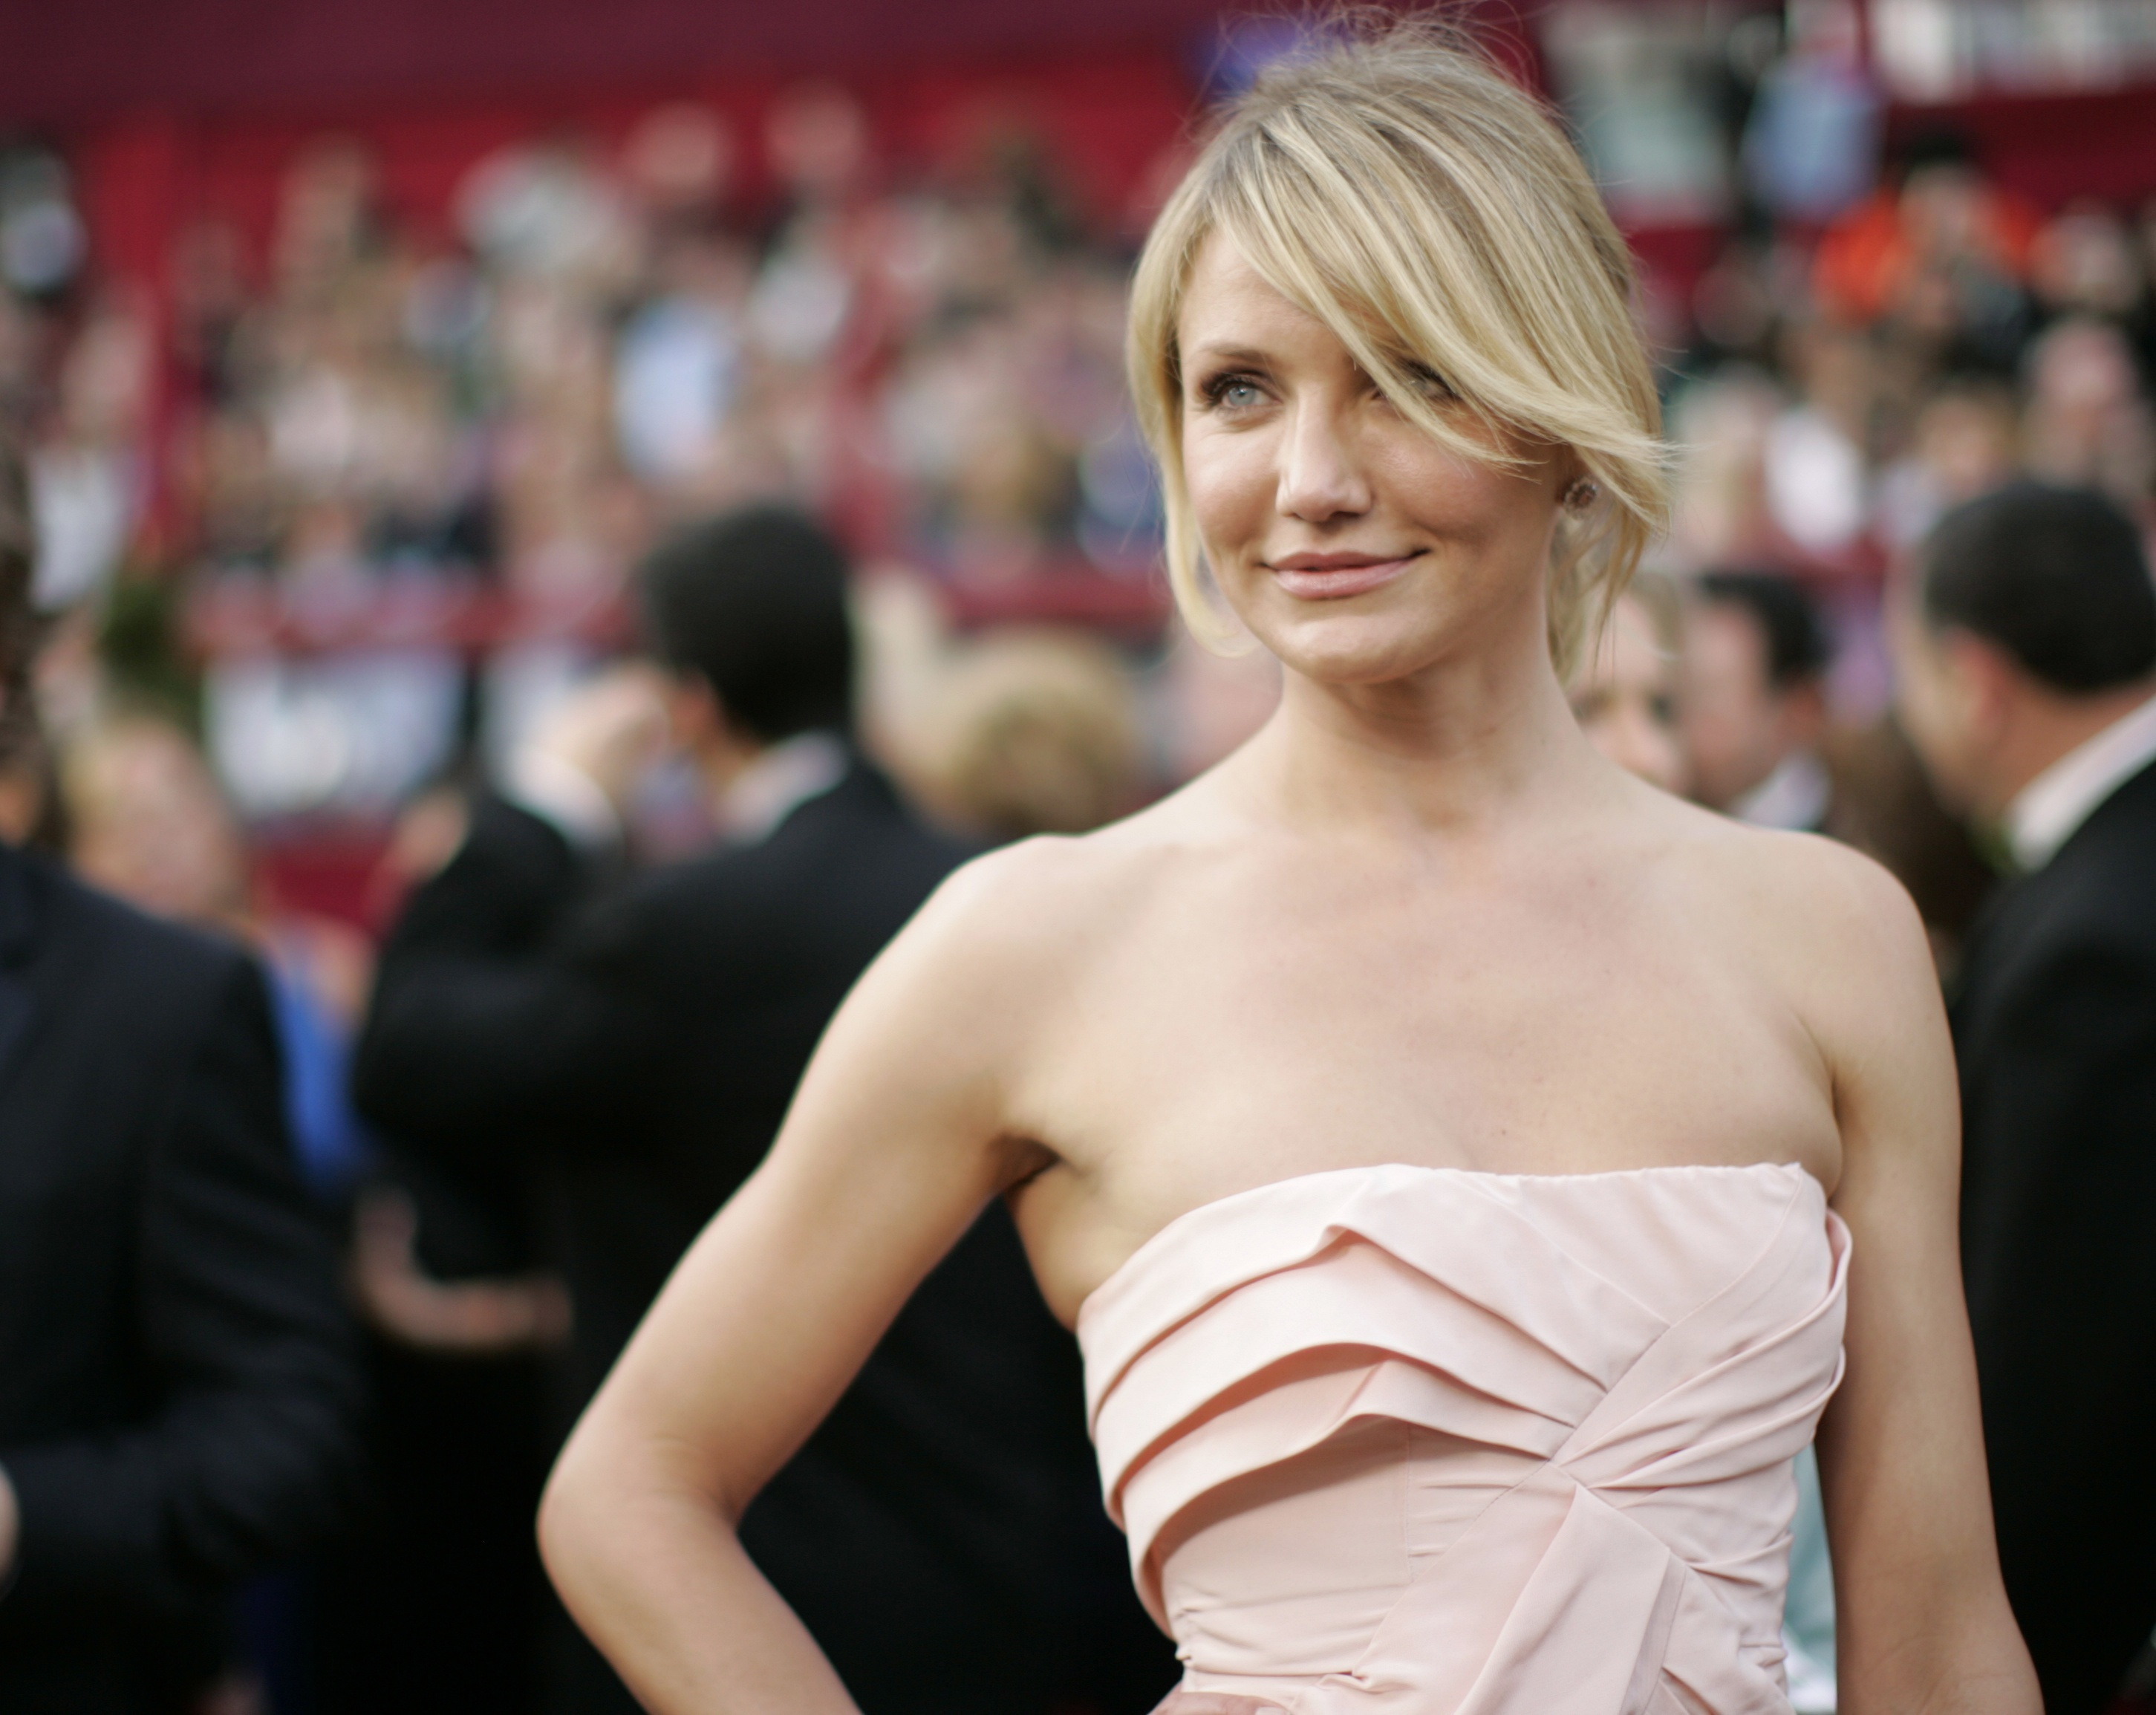 Actress Cameron Diaz poses at the 80th annual Academy Awards in Hollywood